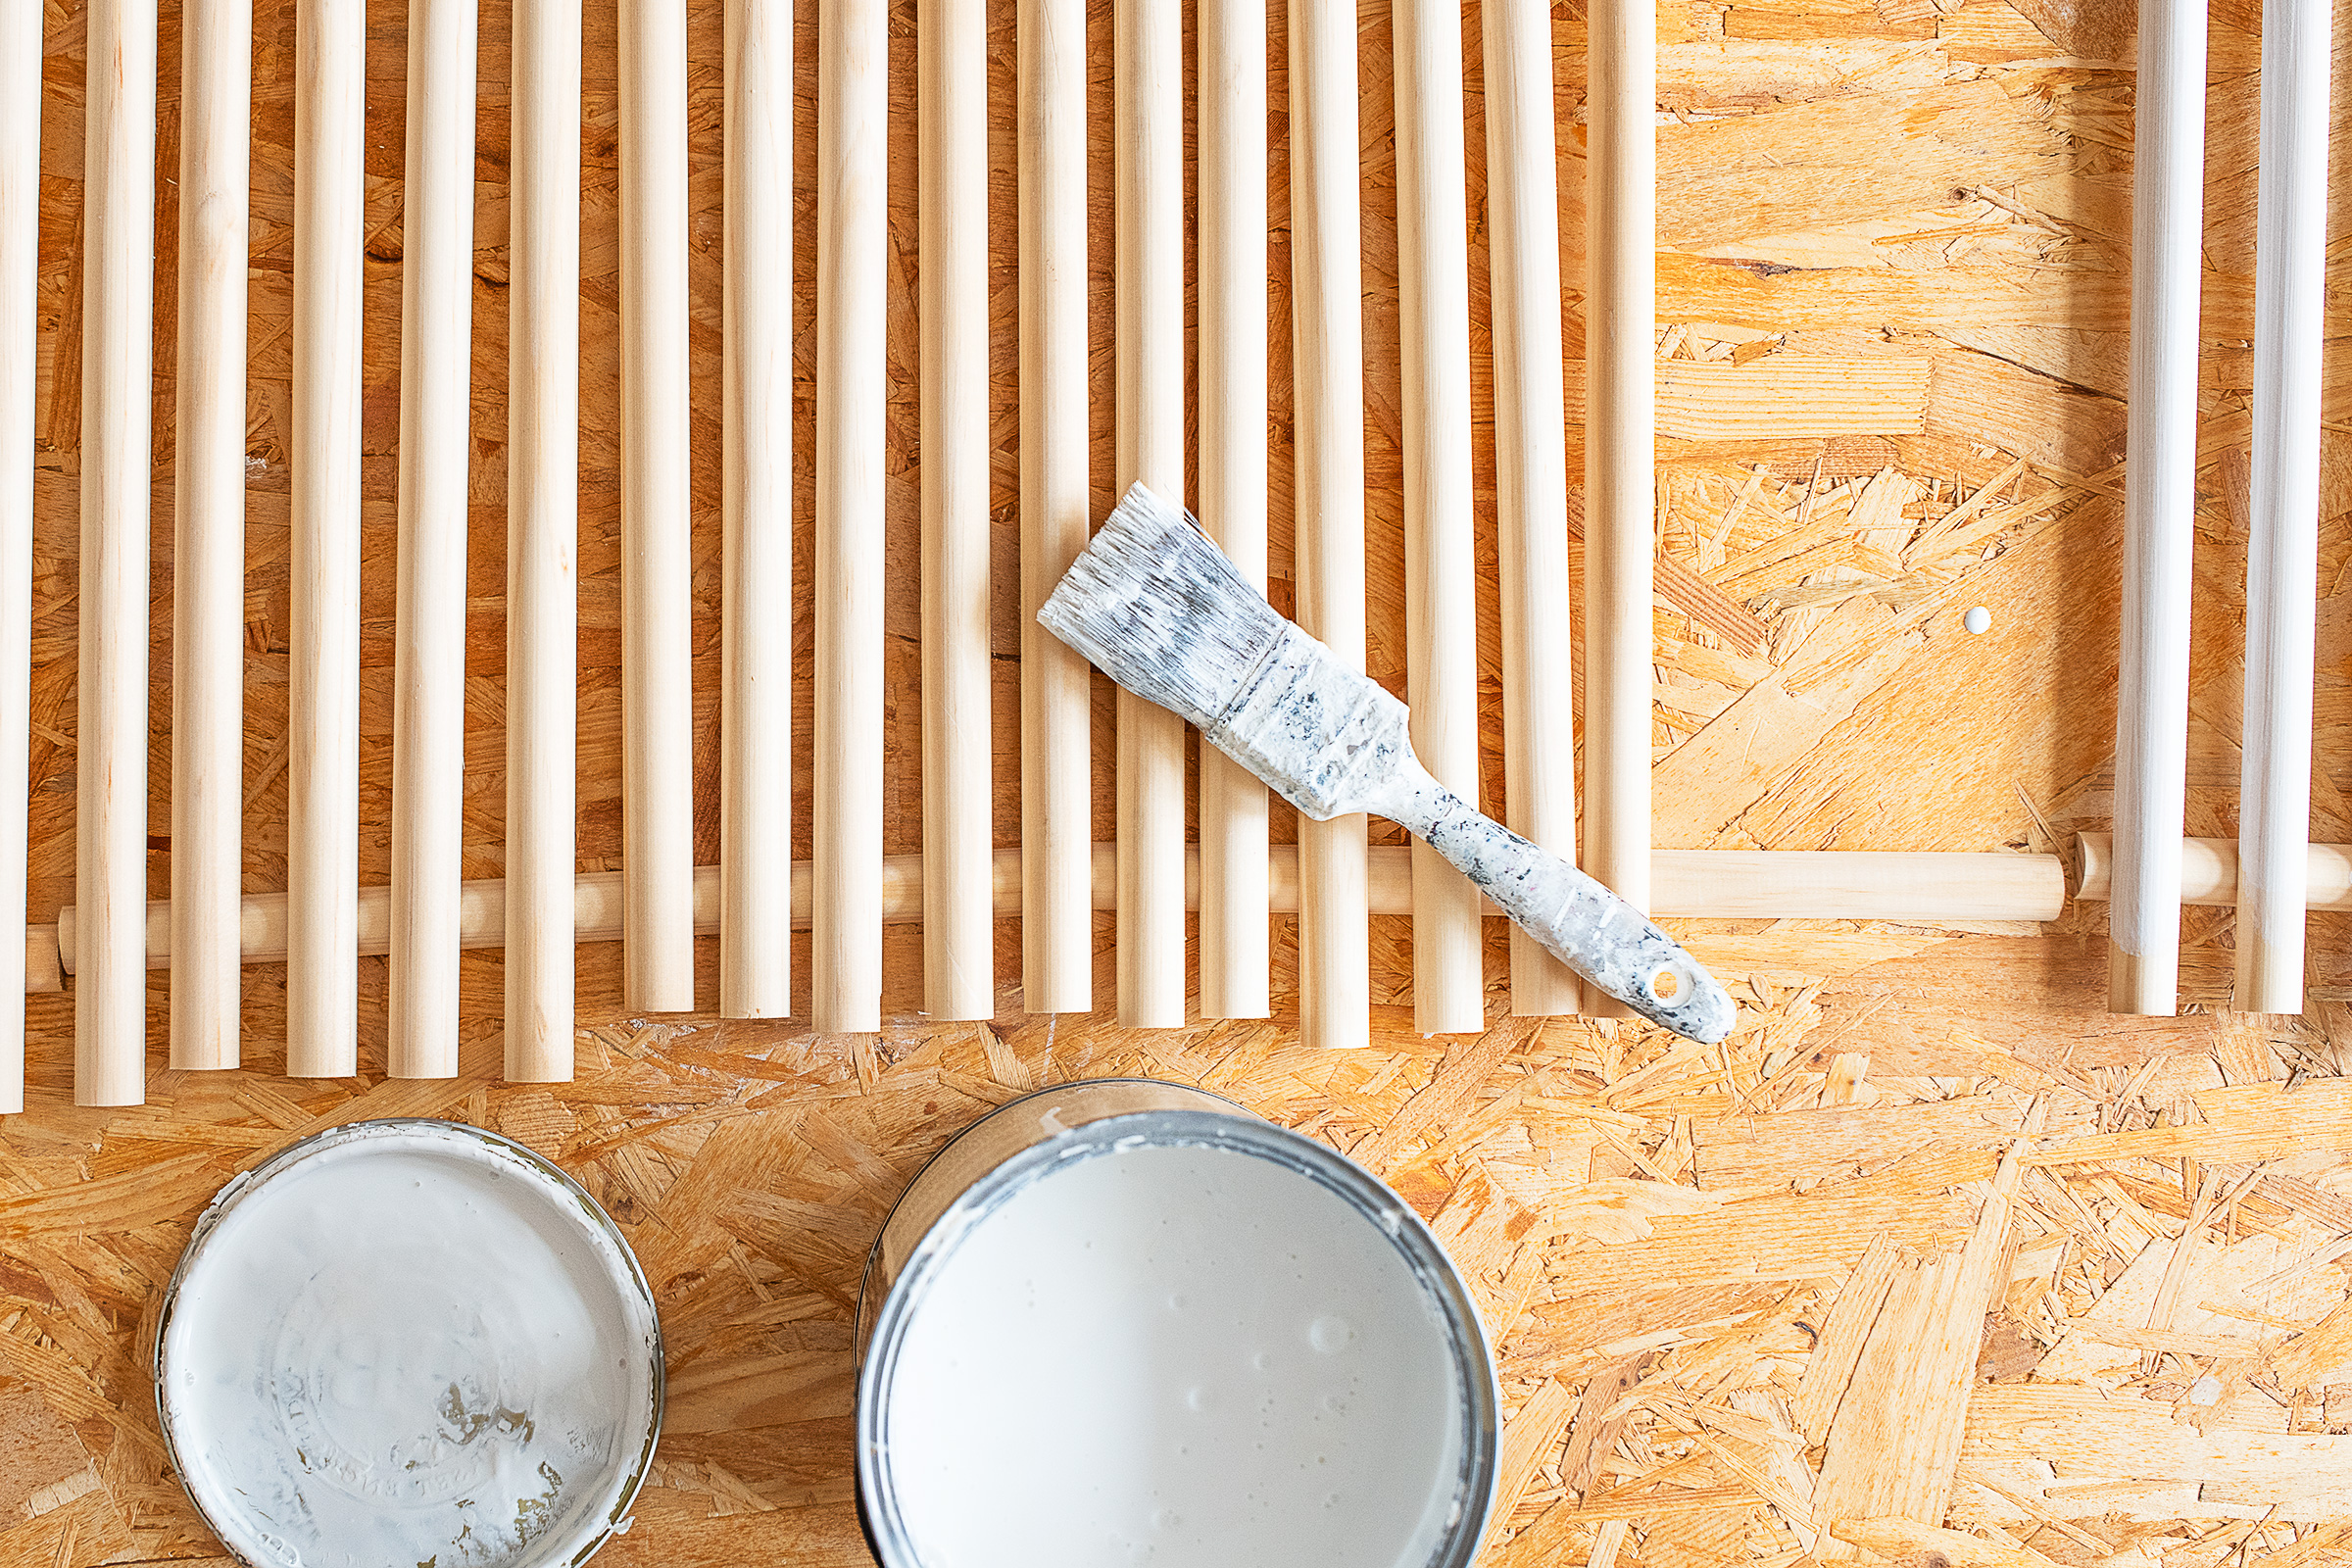 DIY Reeded Side Table - Painting Slats